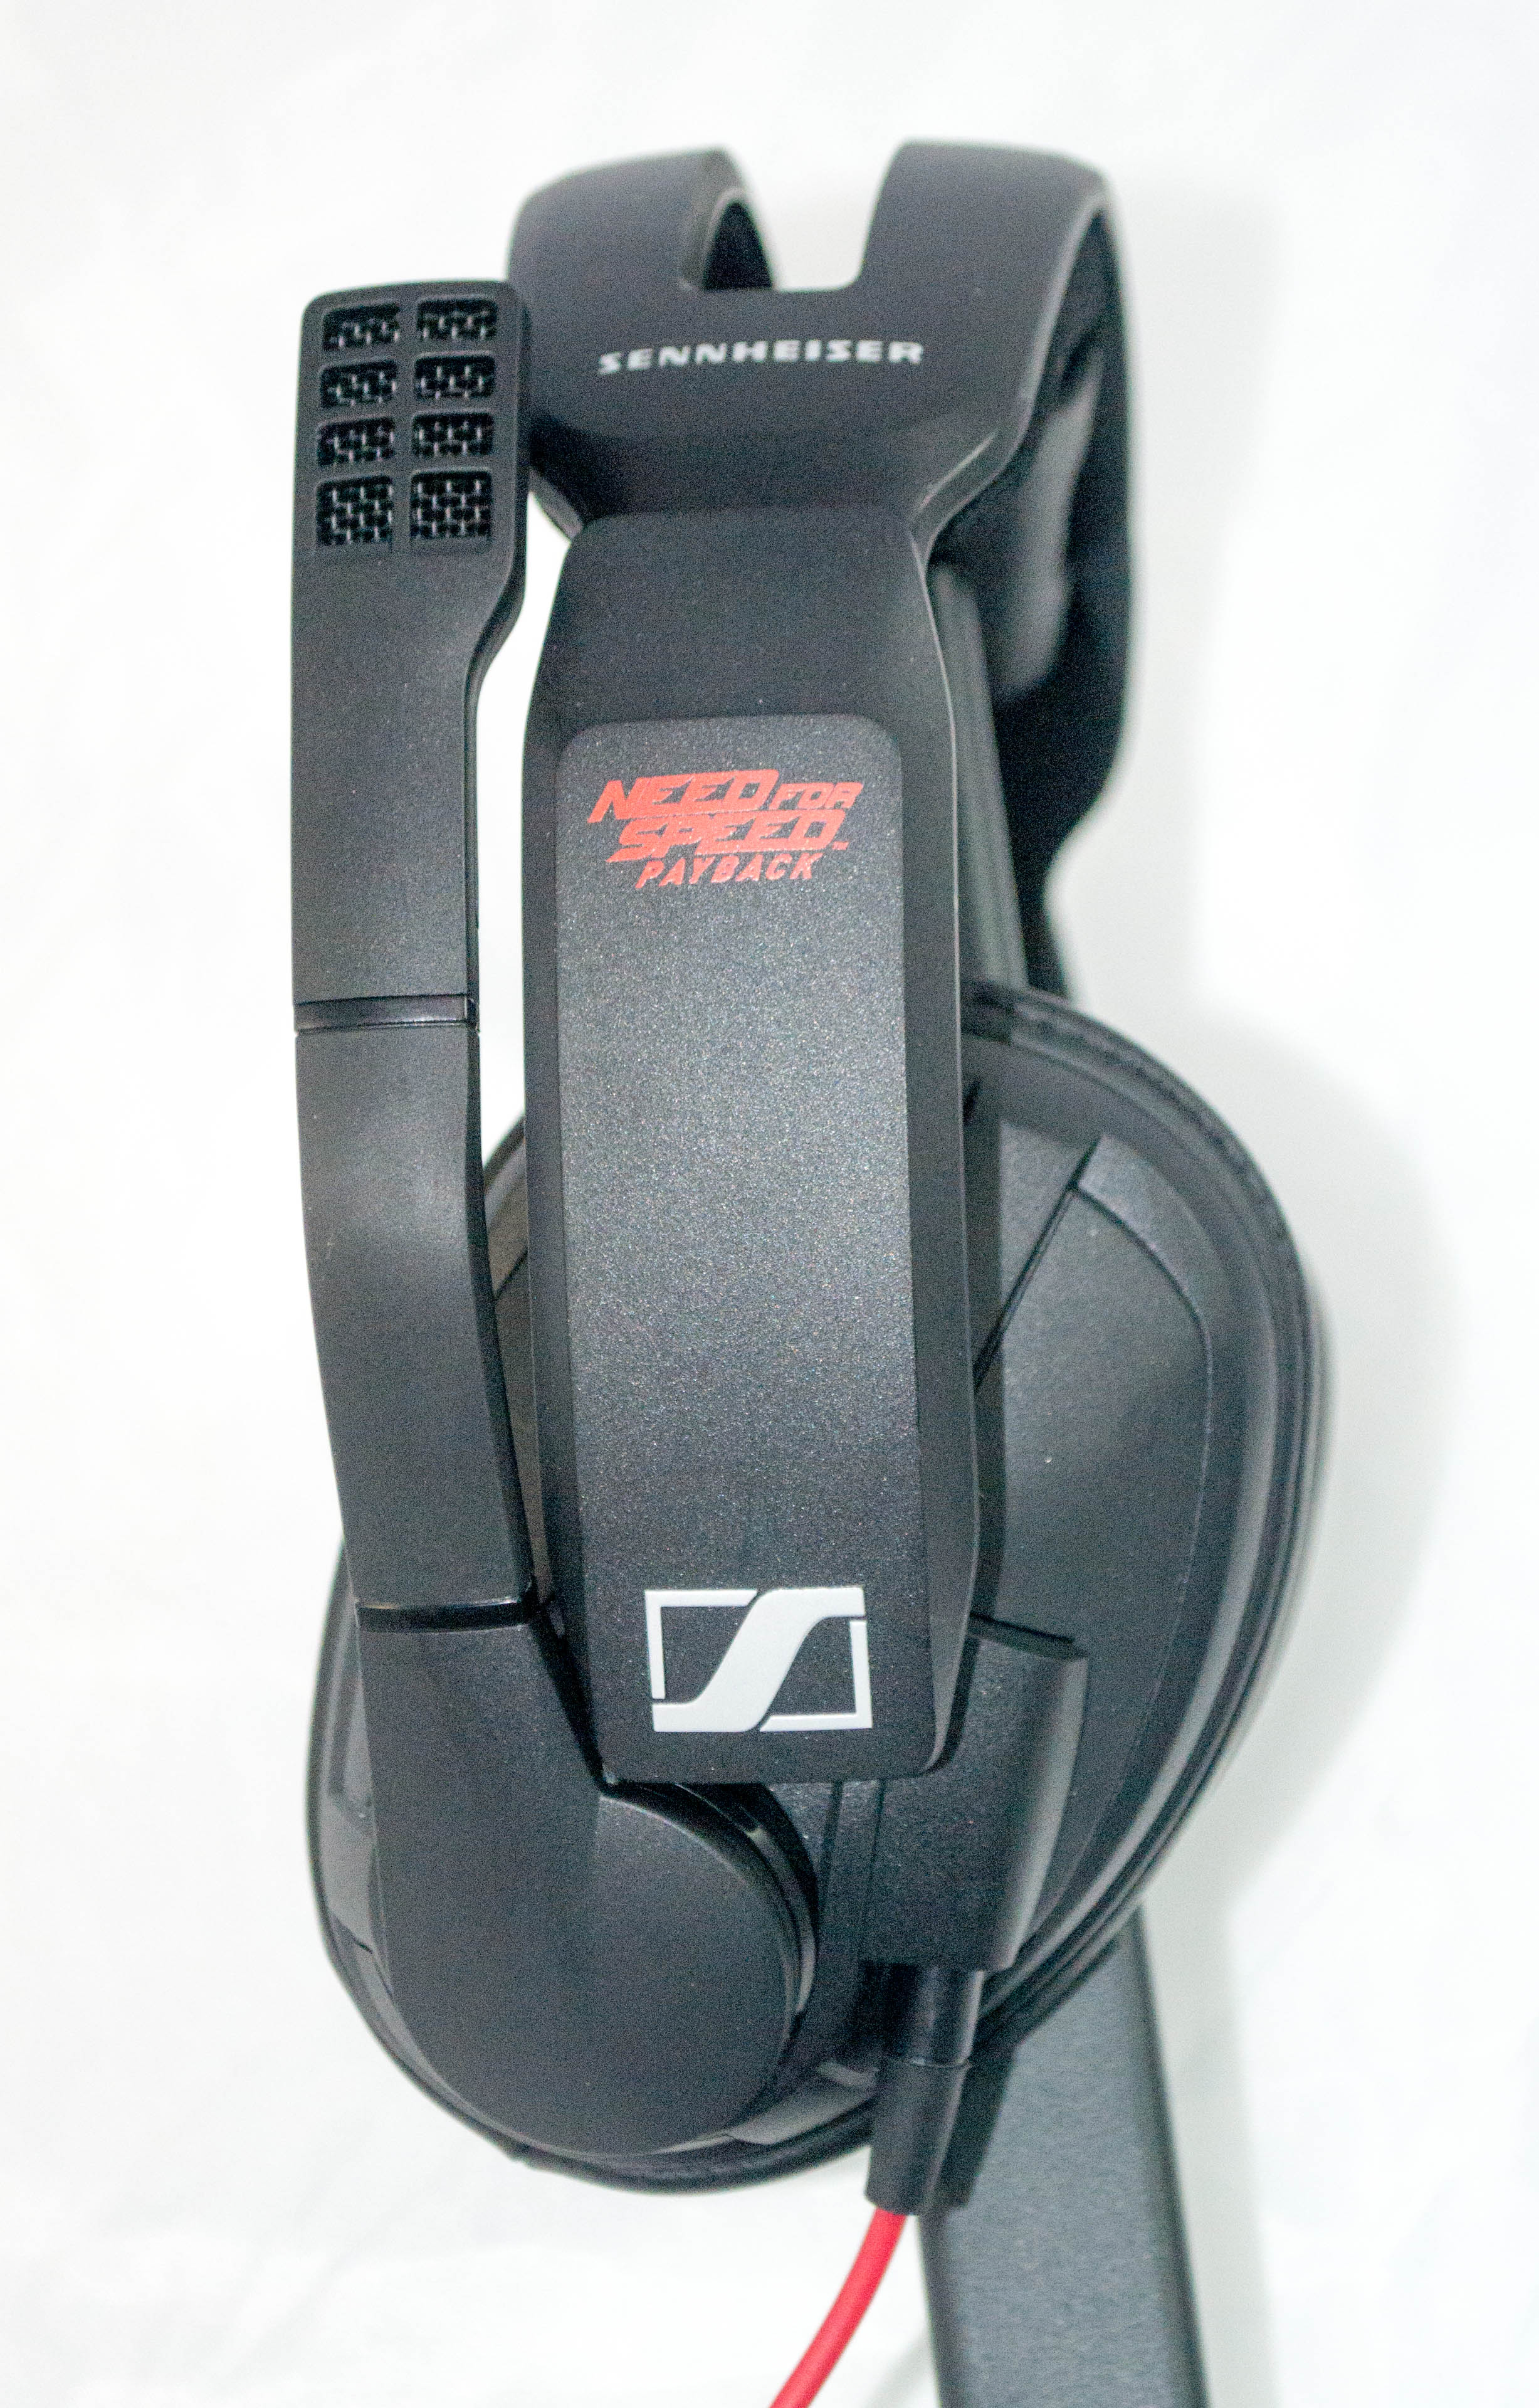 Sennheiser GSP 303 NFSP Ear Cup Outside With Mic